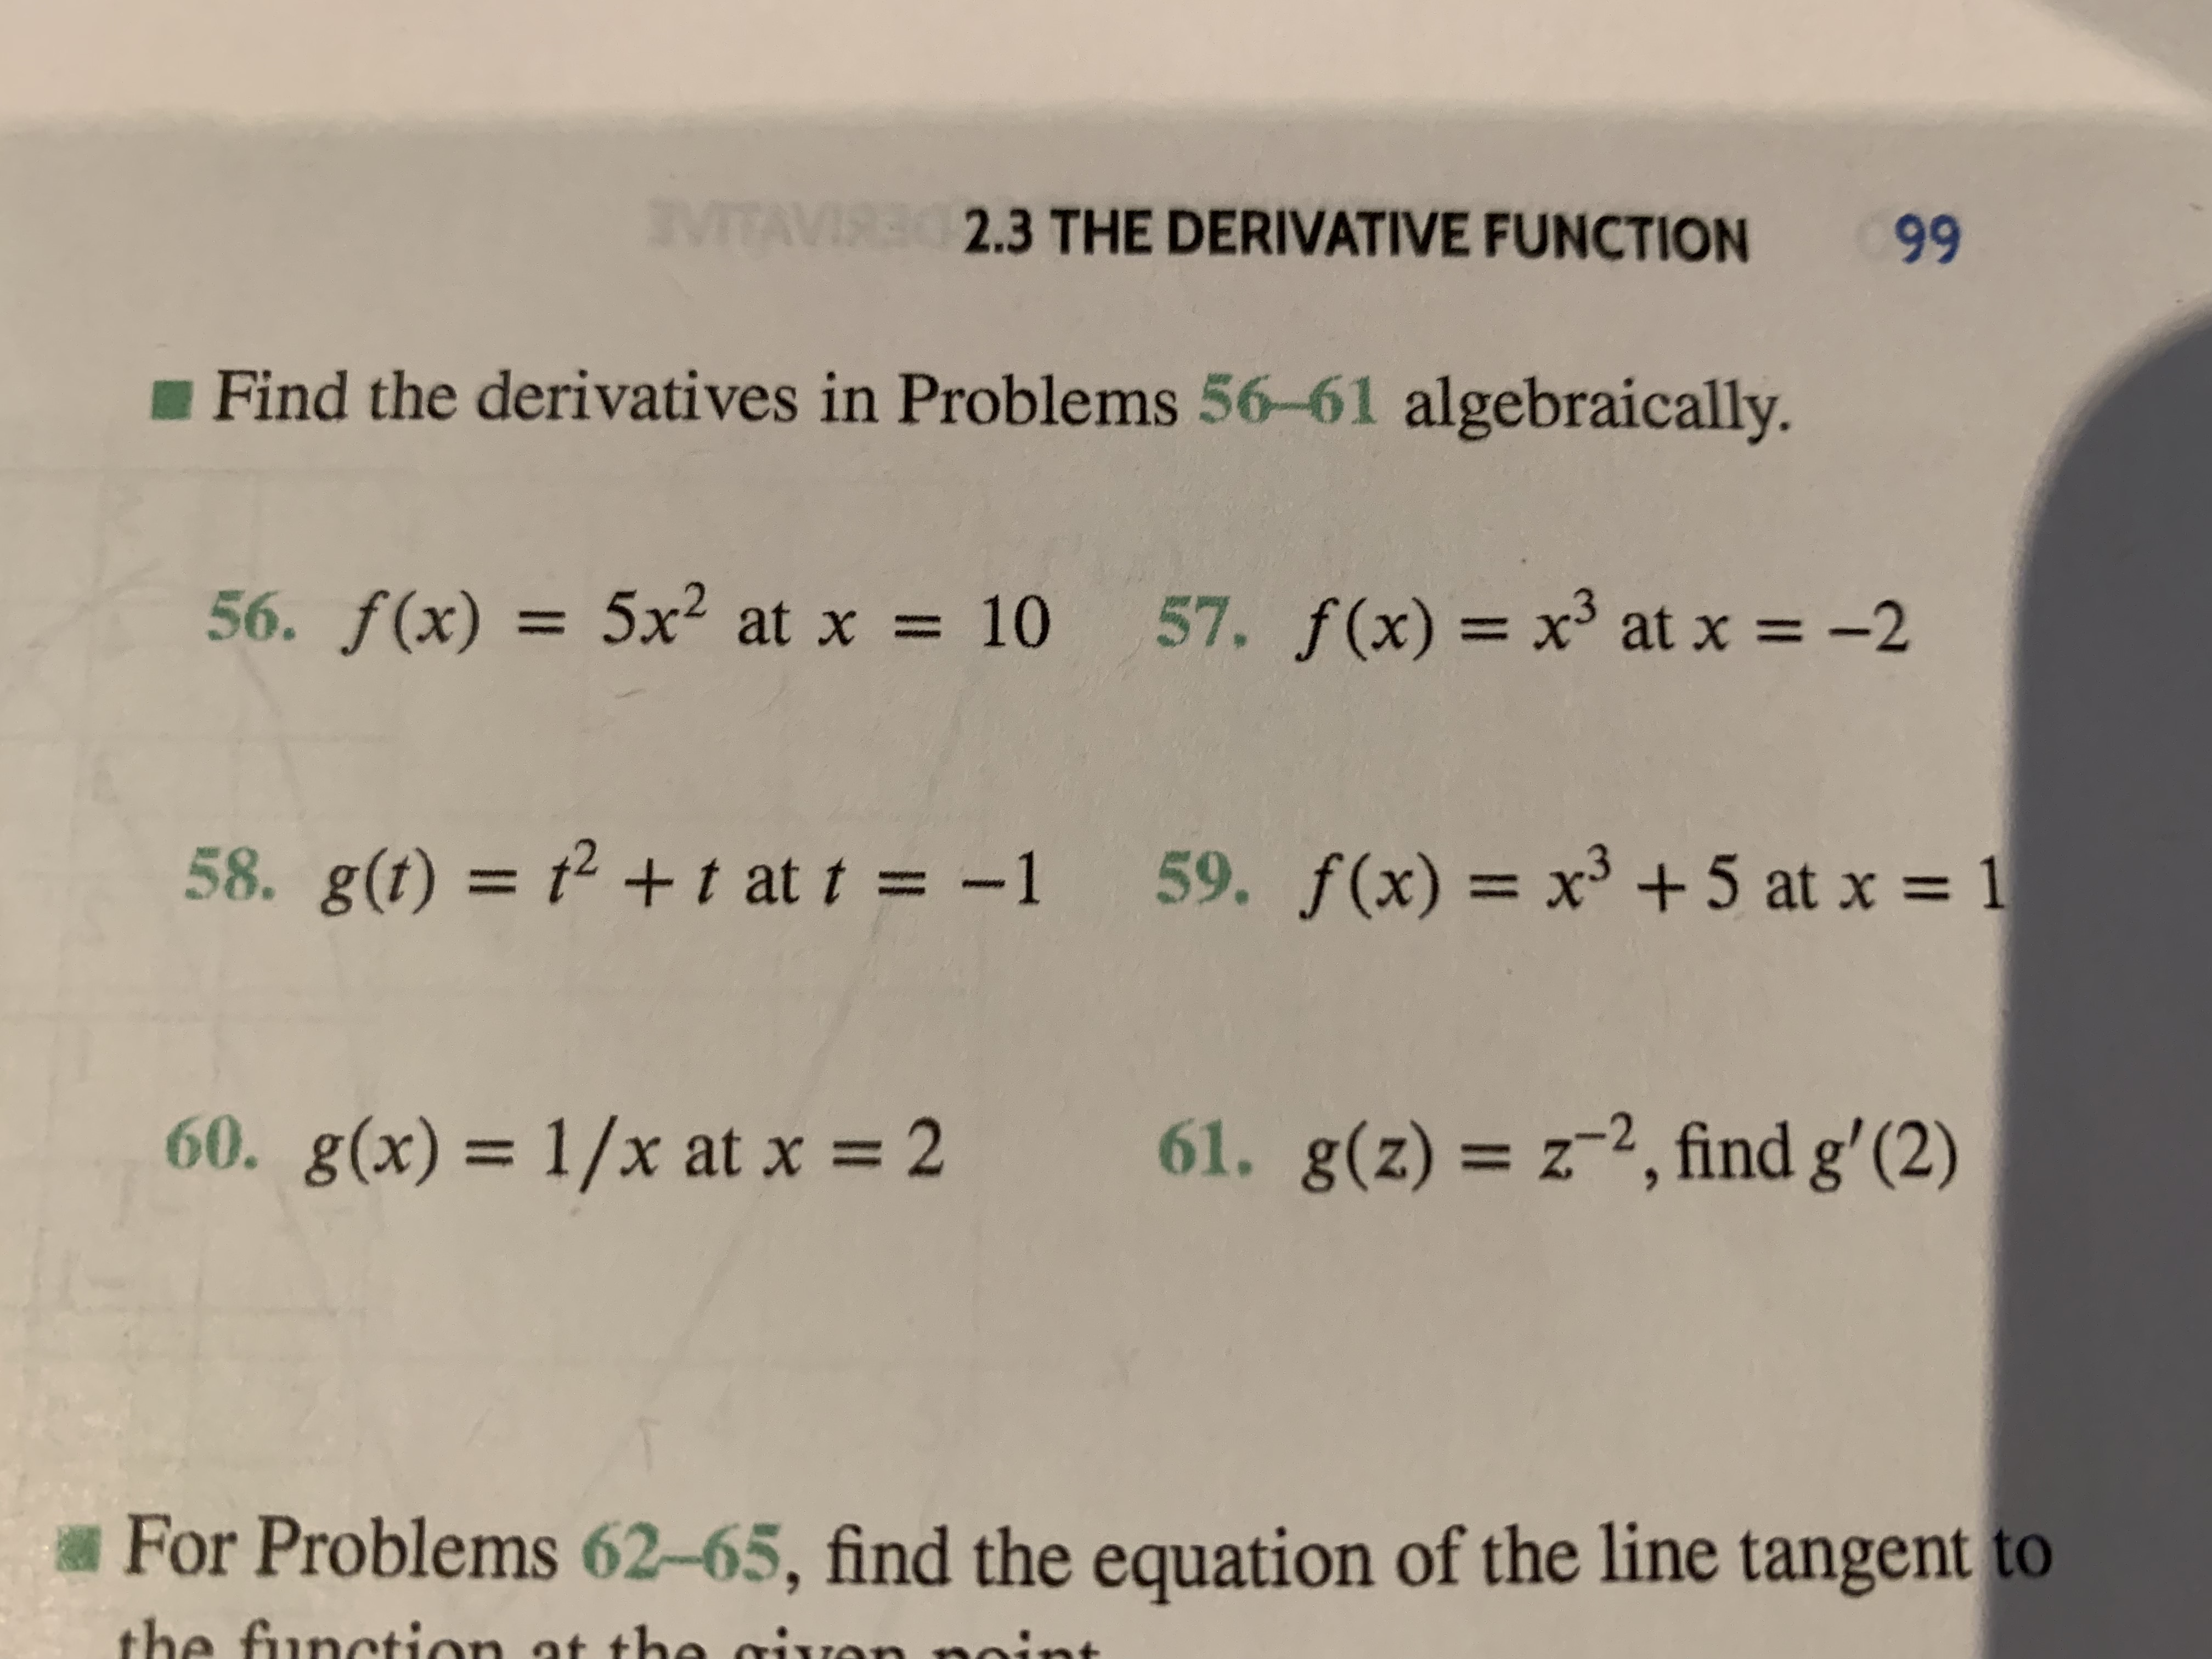 VITAVIRE S3 THE DERIVATIVE FUNCTION 99 Find the derivatives in Problems 56-61 algebraically. 56. f(x) = 5x2 at x 57. f(x) = x3 at x 10 -2 58. g(t) = 2 t at t = -1 59. f(x) x3 +5 at x 1 61. g(z) z2, find g' (2) 60. g(x)= 1/x at x=2 Z For Problems 62-65, find the equation of the line tangent to the function at the givon nin